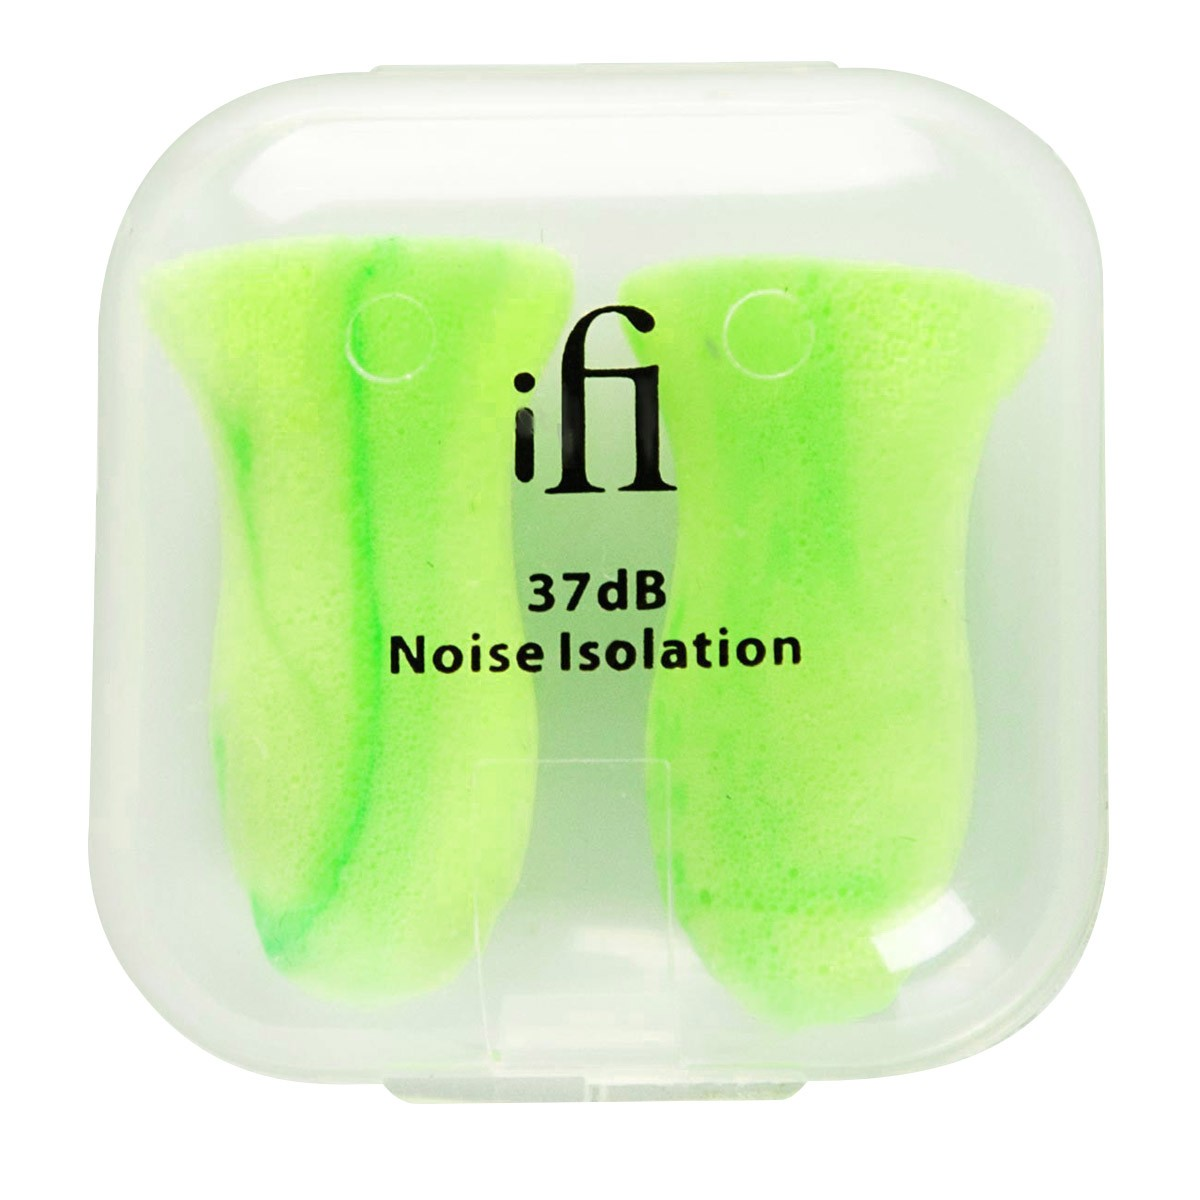 IFI AUDIO EAR PLUGS Hearing Protection 37dB (8 Pairs)